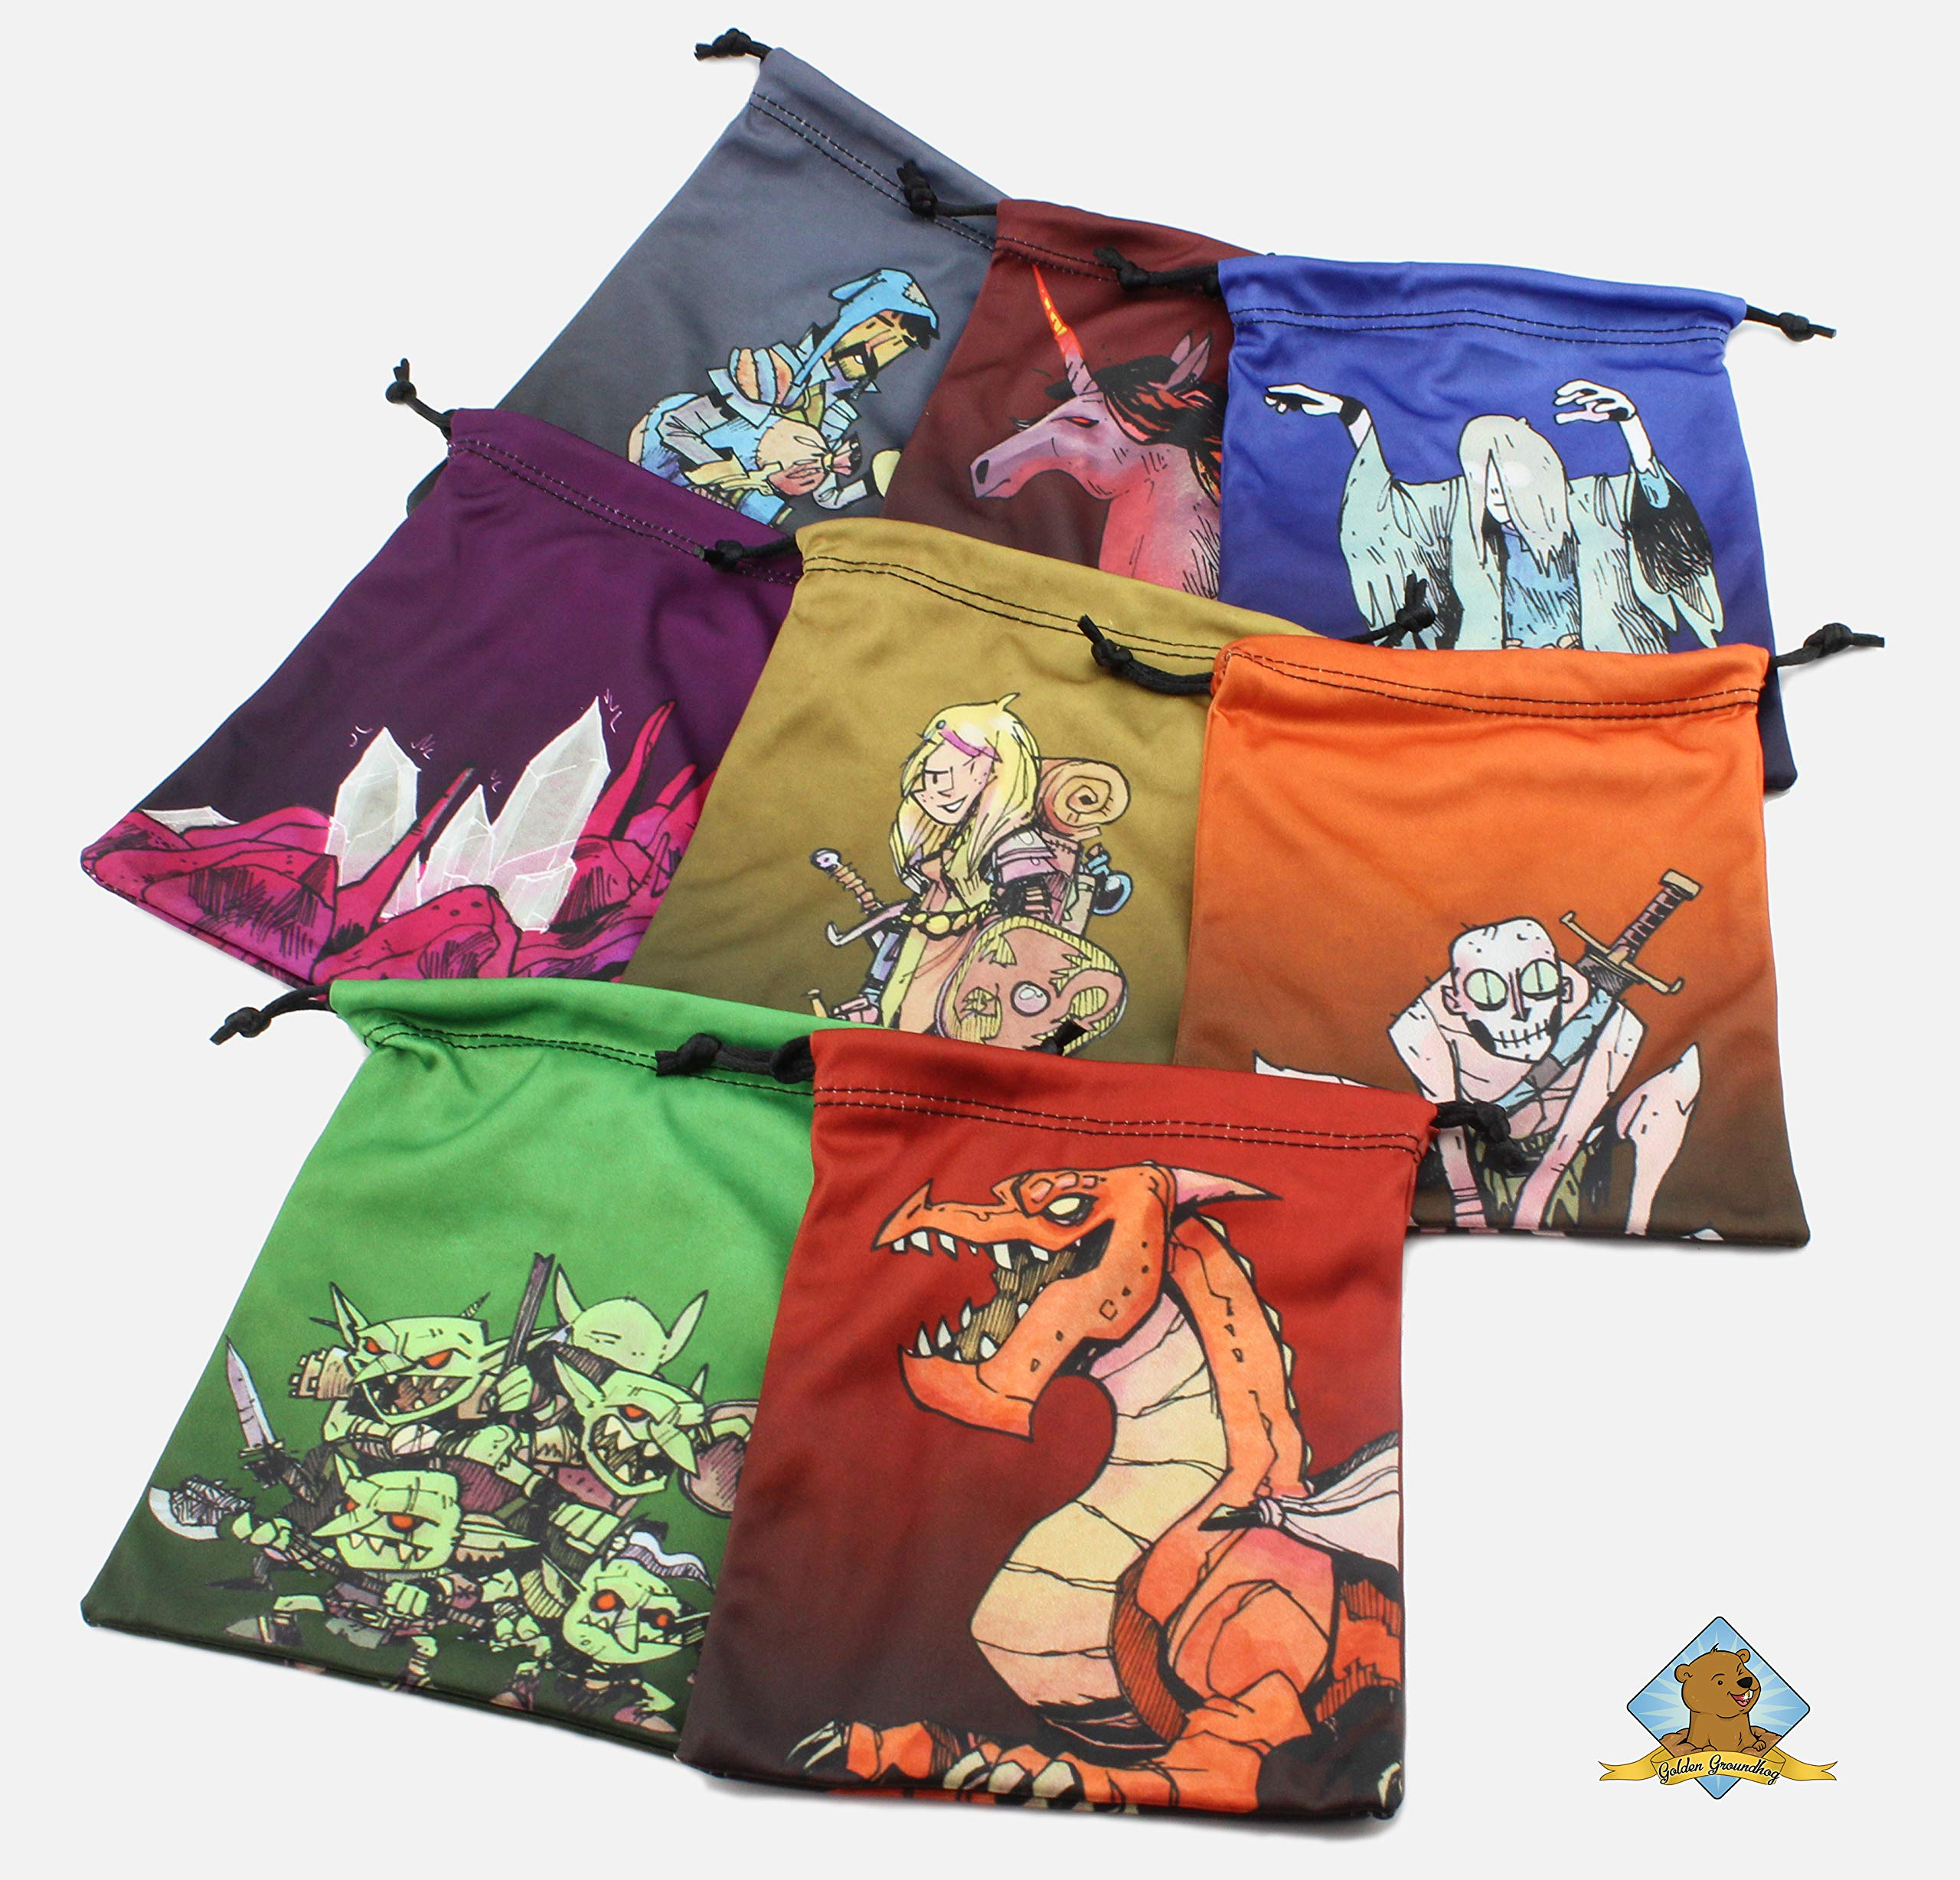 Set of 8 Drawstring Bags to Store Each Character for Board Games Compatible to Vast!